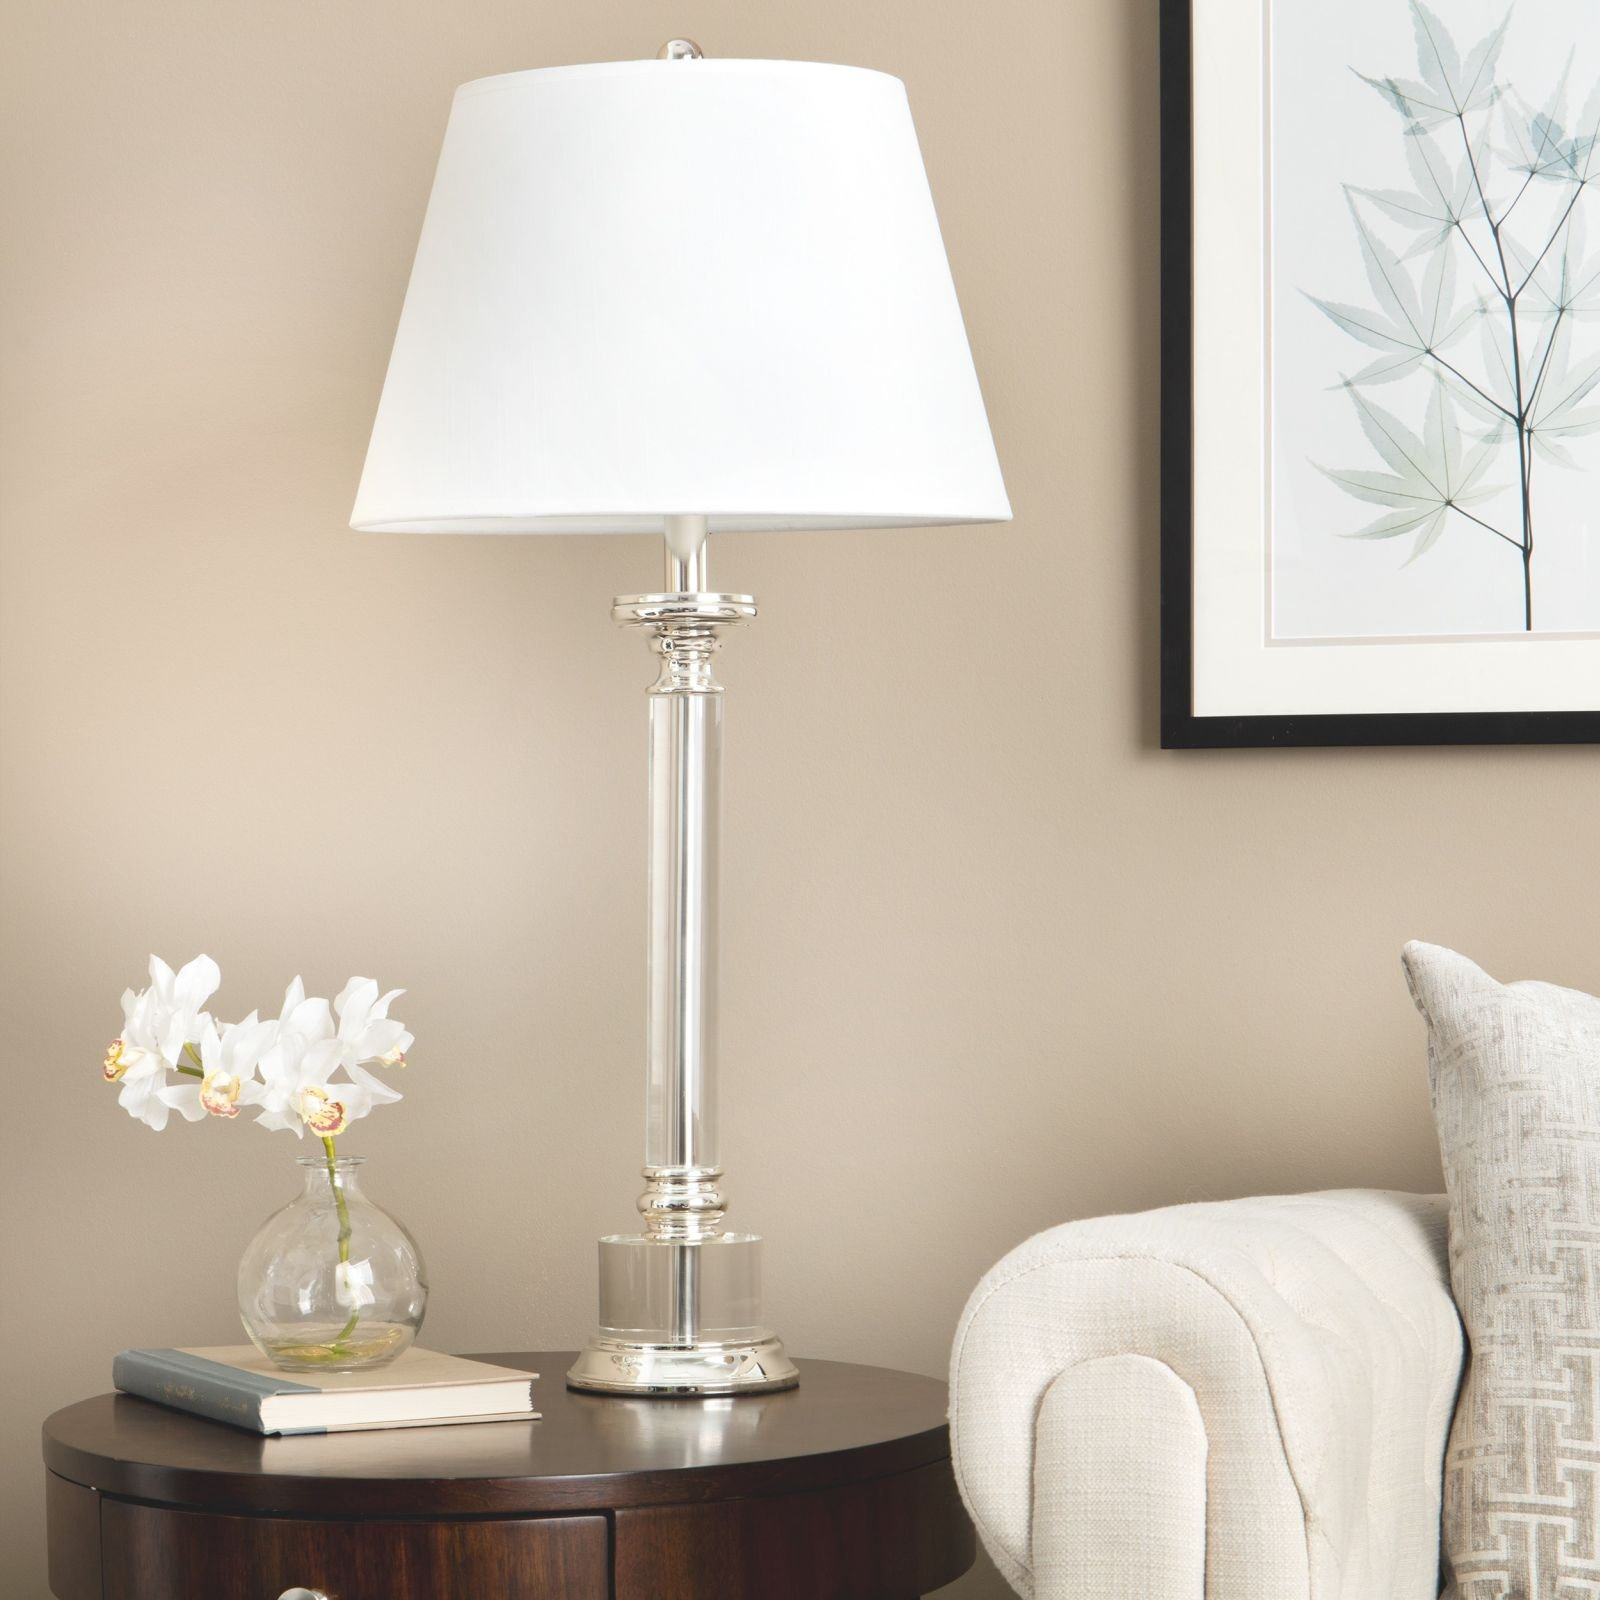 Contemporary Tall Table Lamp Suitable For Sofa, Side, End Tables And Nightstands. Round Column Lamp Provides Ample Lighting. Glass Crystal Base, White Shade And Chrome Finish Create Elegant Atmosphere by MFR Light Fixtures